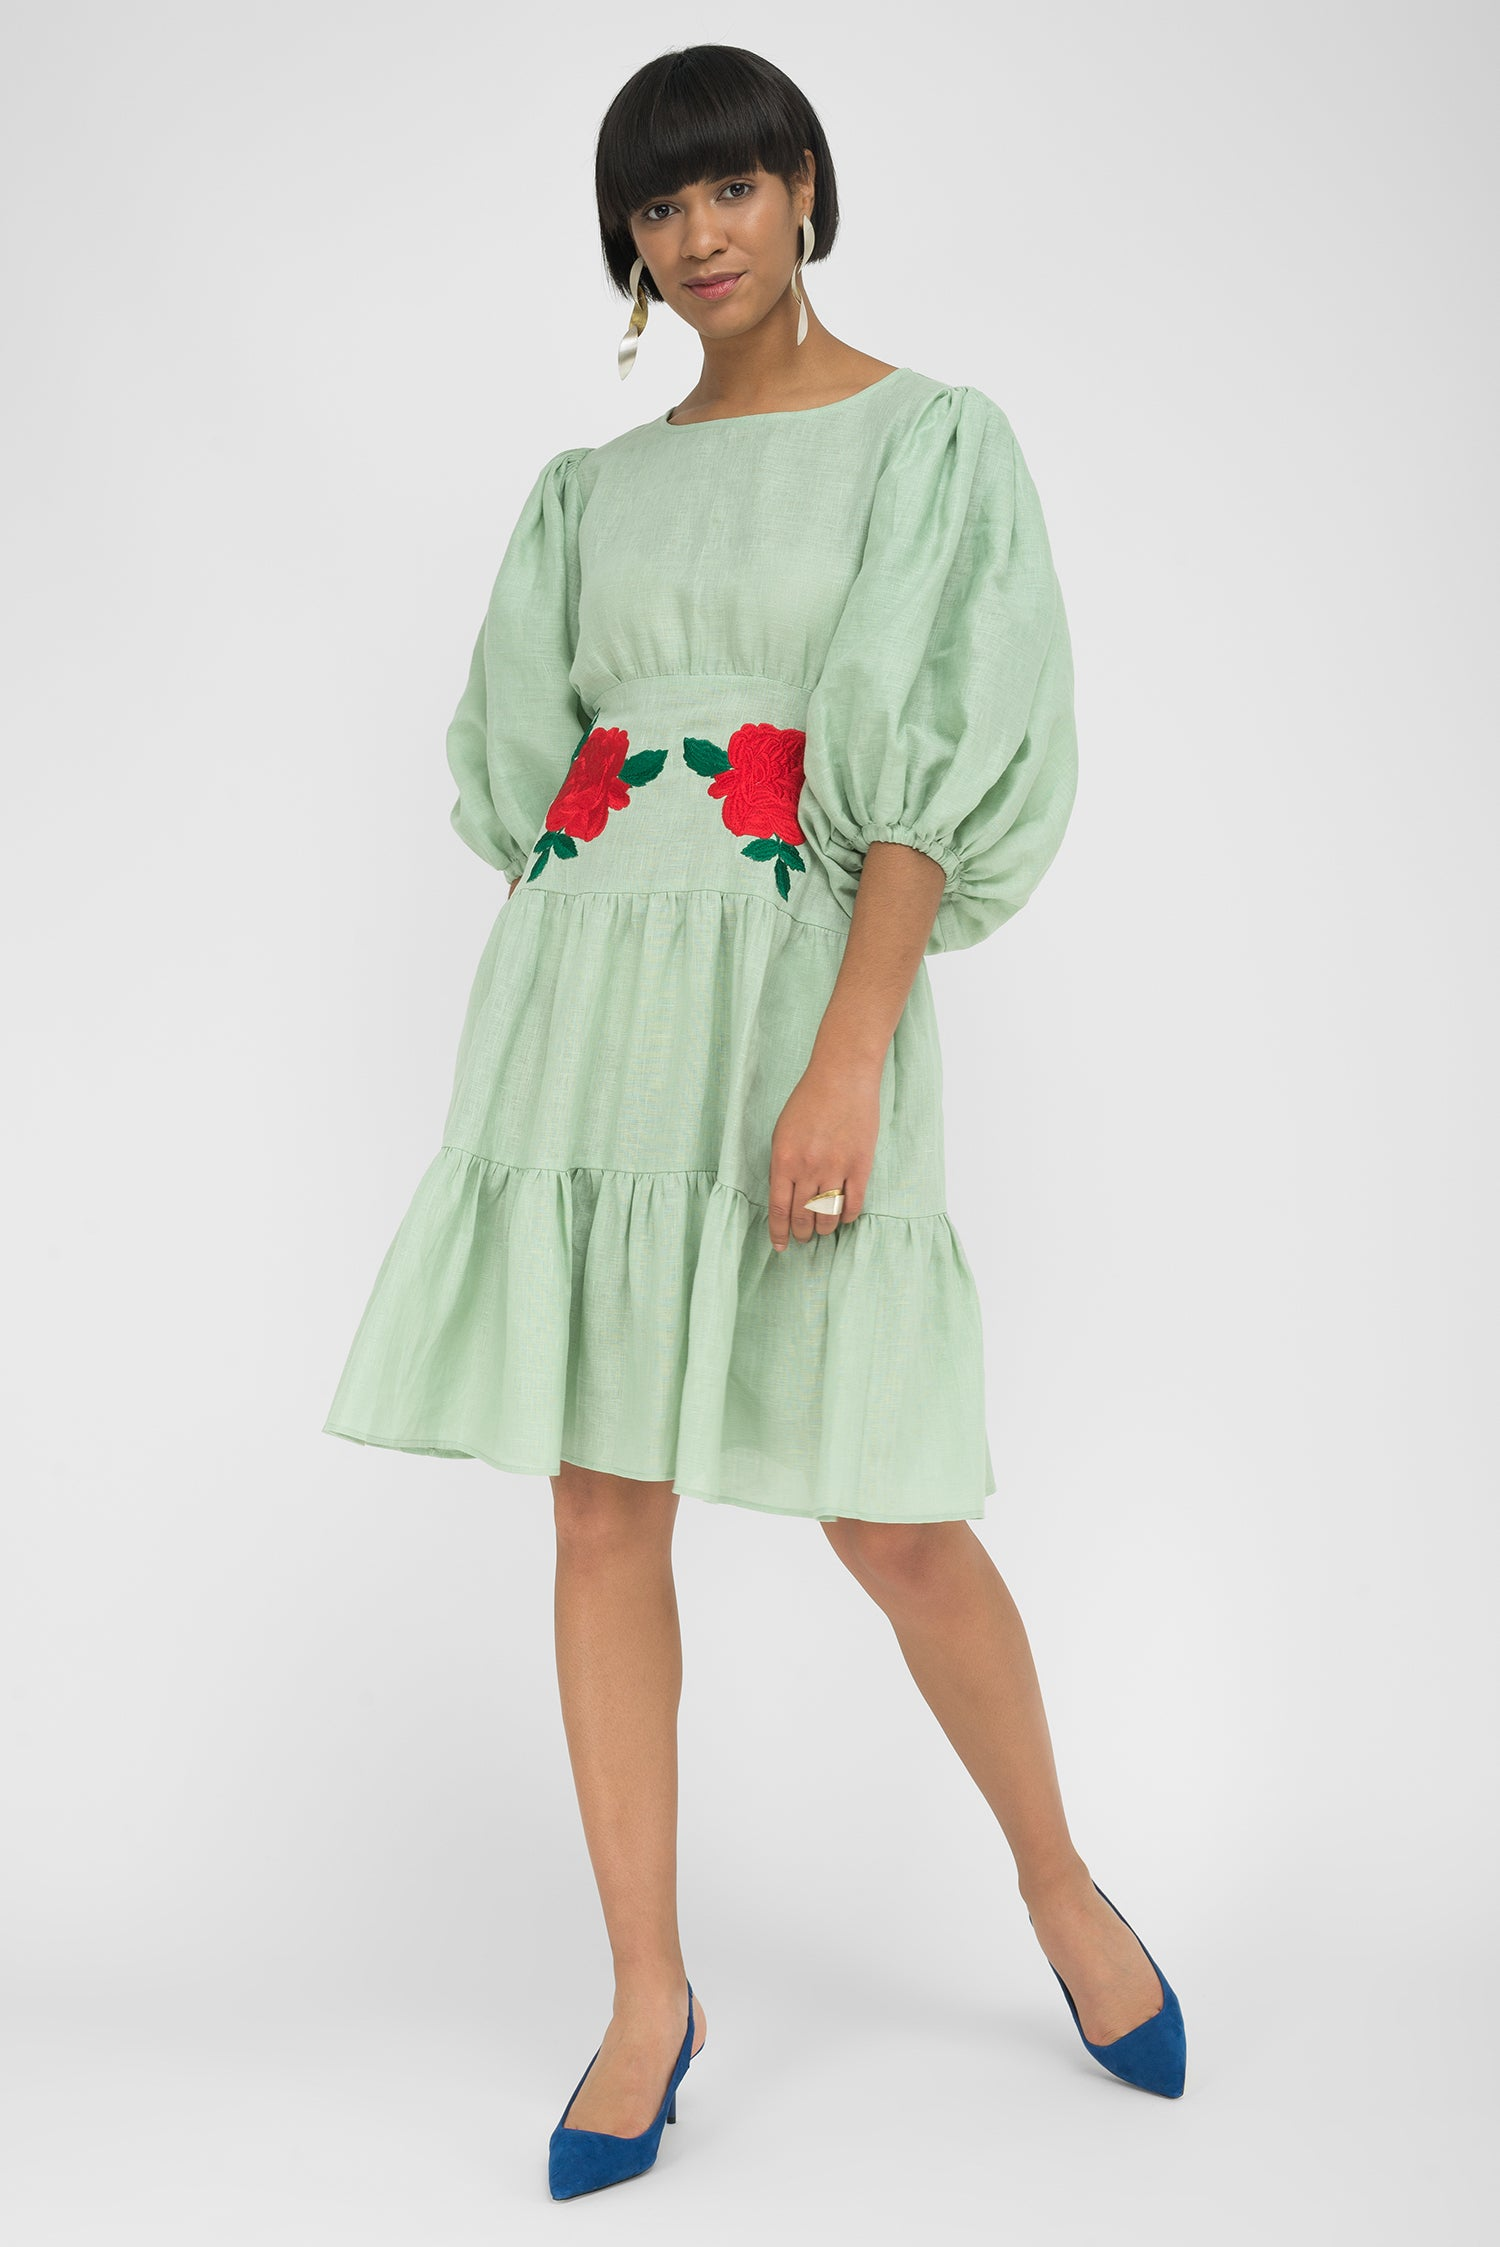 FANM MON SALDA Mint Green Linen Knee Length Dress